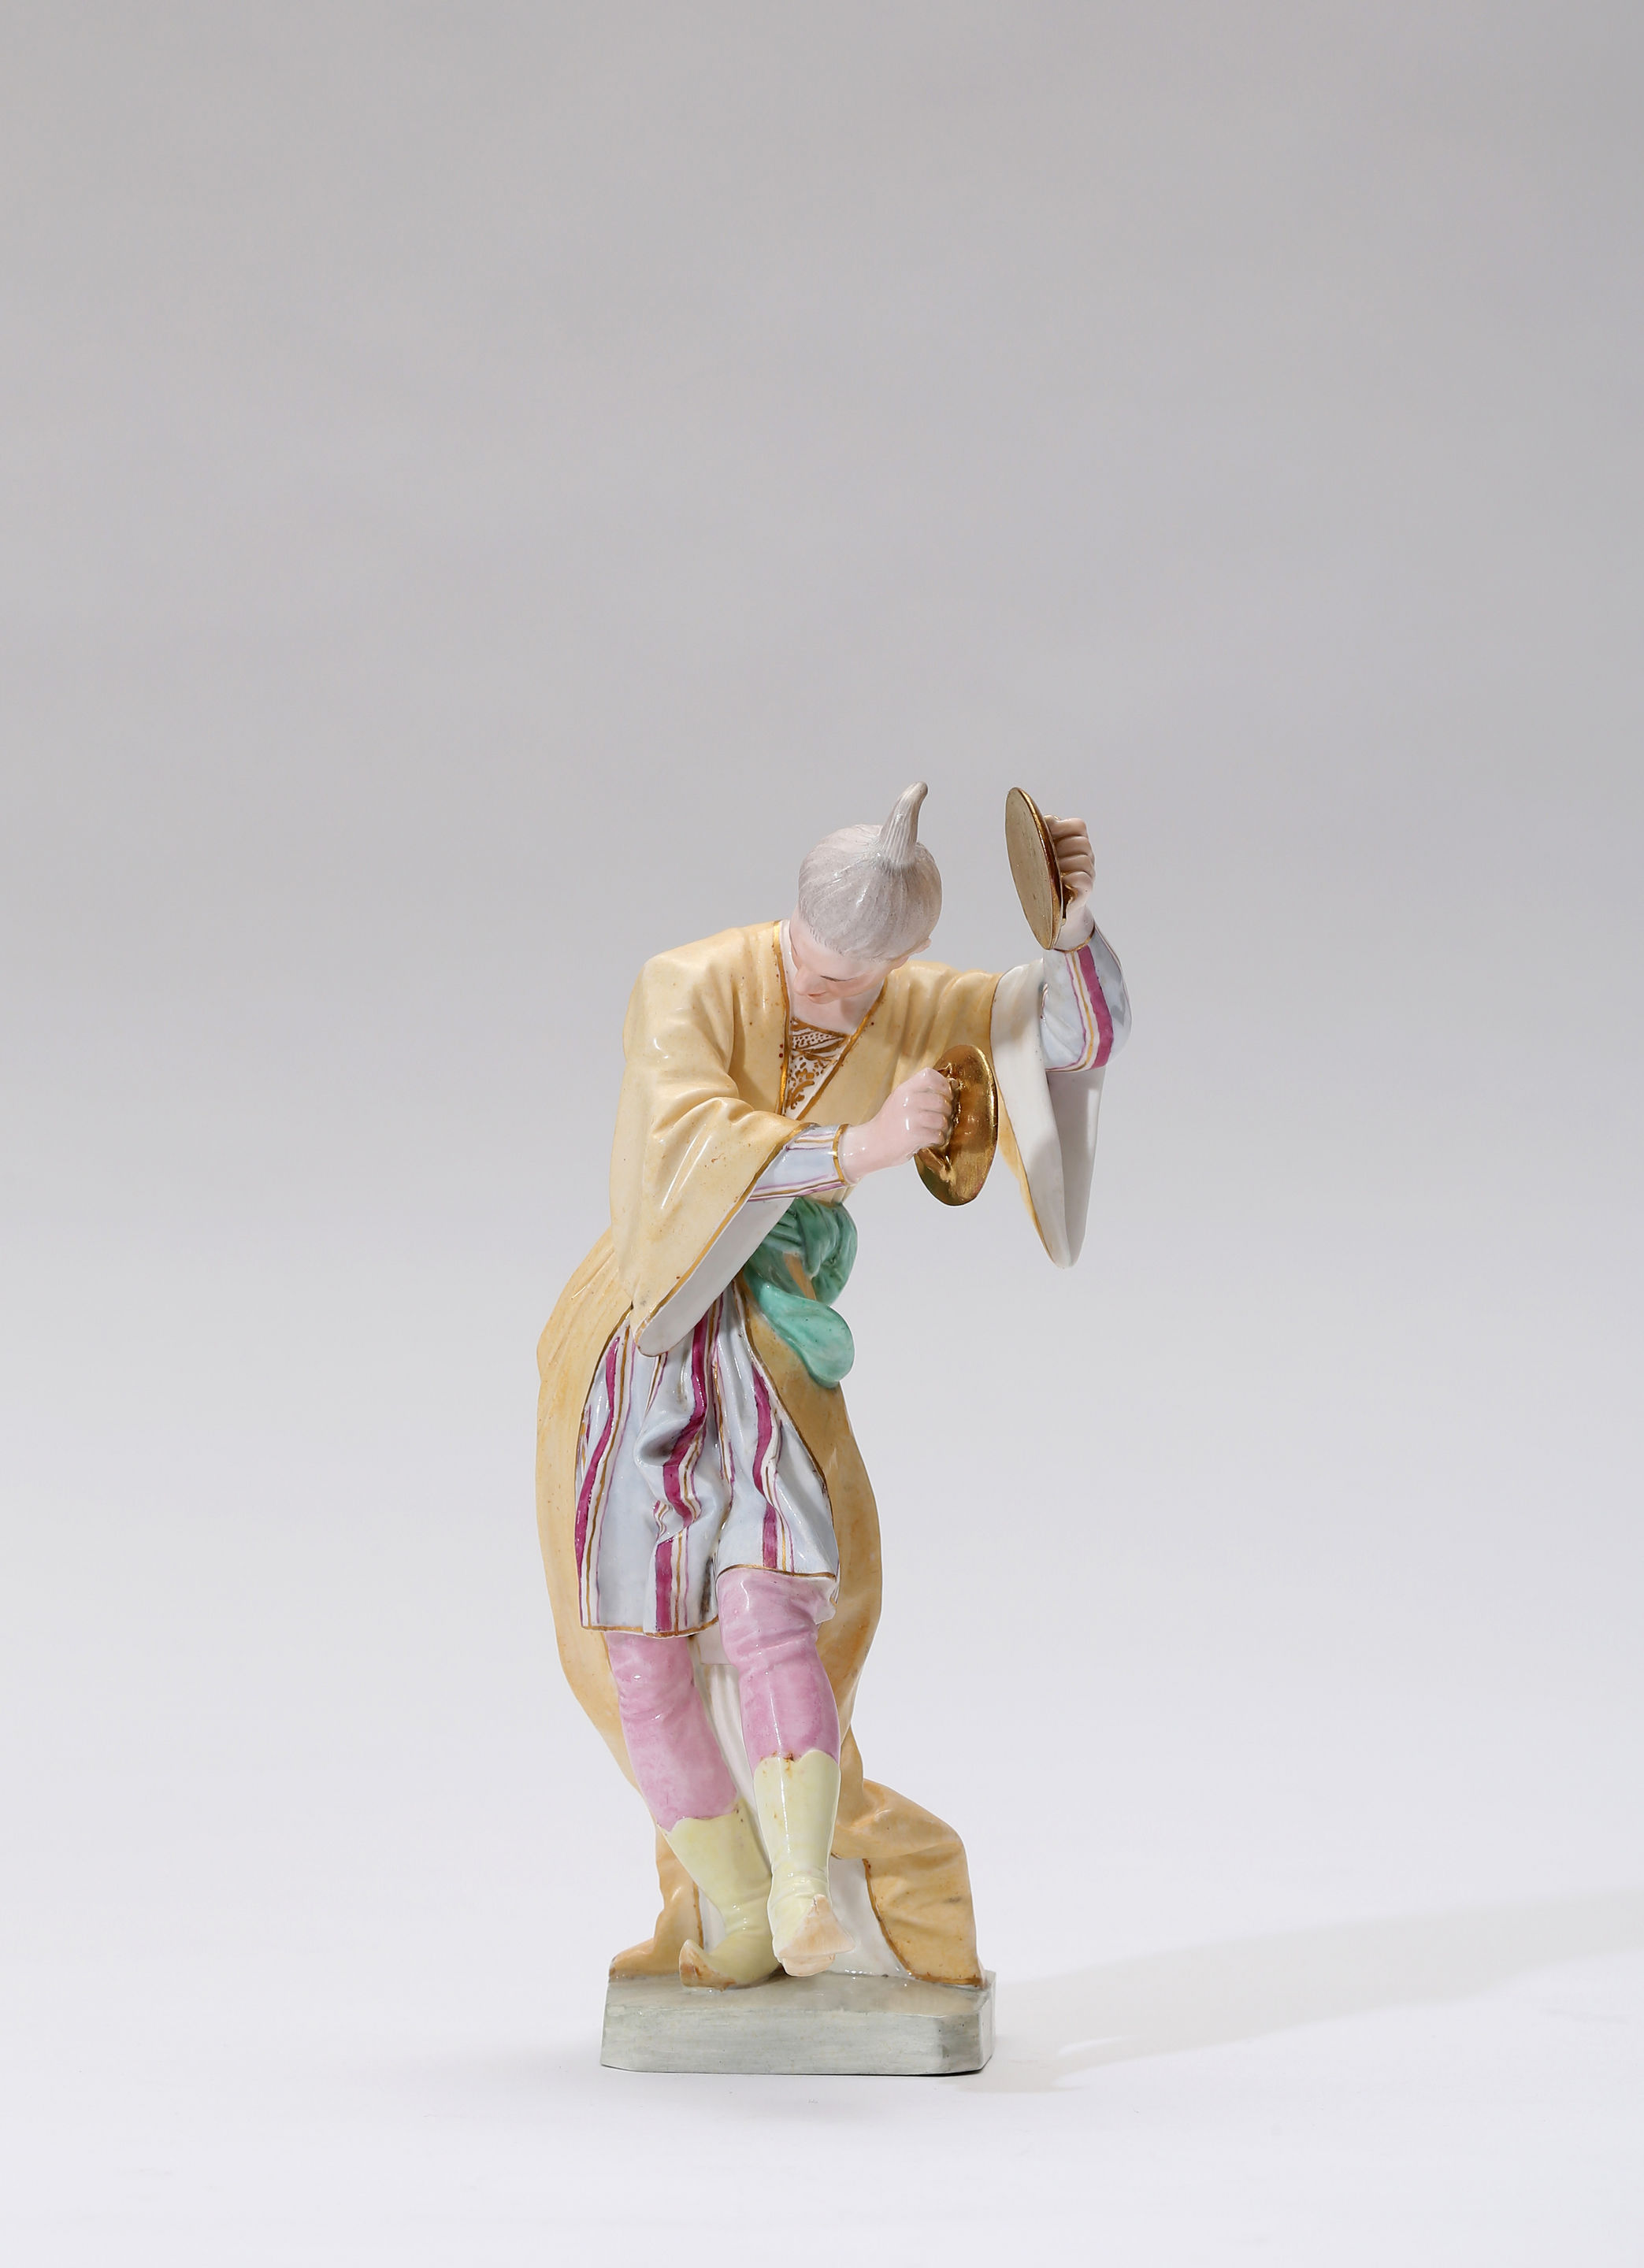 A Höchst Porcelain Figure of a Chinese Musician Playing the Cymbals, Modelled by Johann Peter Melchior